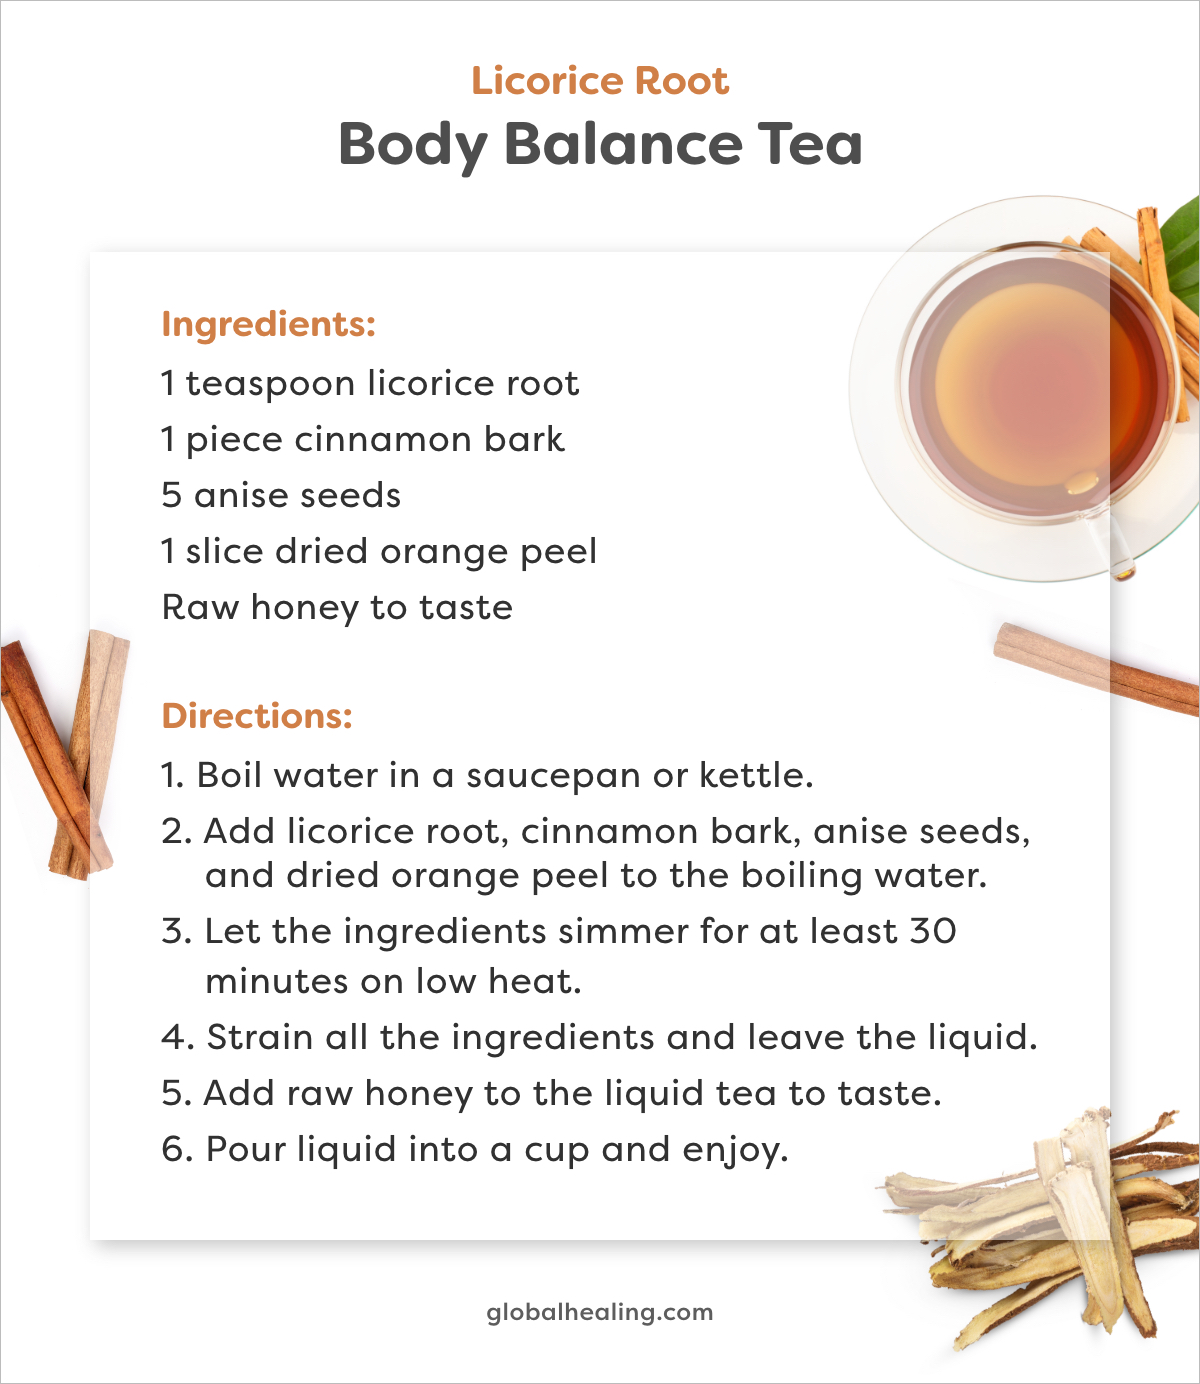 Body Balance Tea recipe